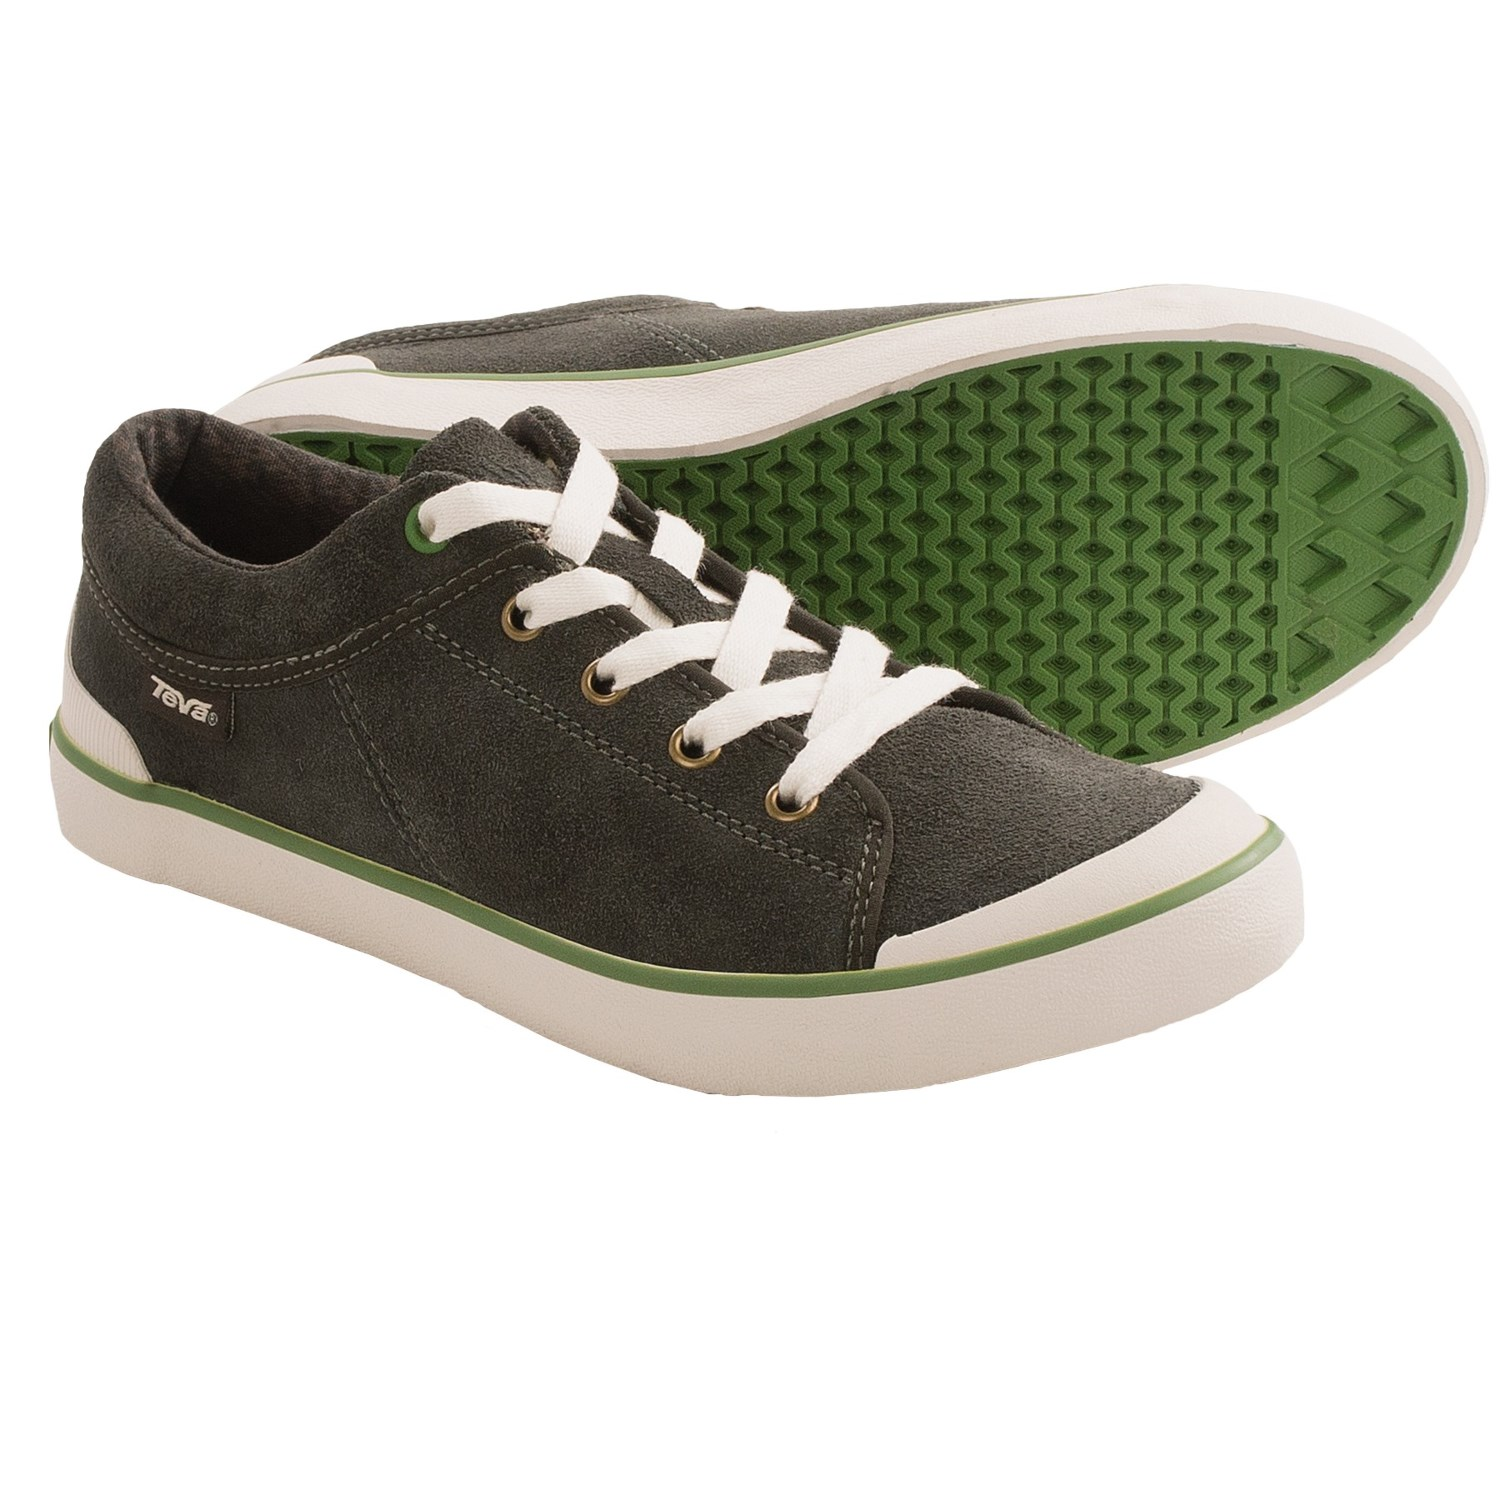 Teva Freewheel Sneakers (For Women) in Black Olive